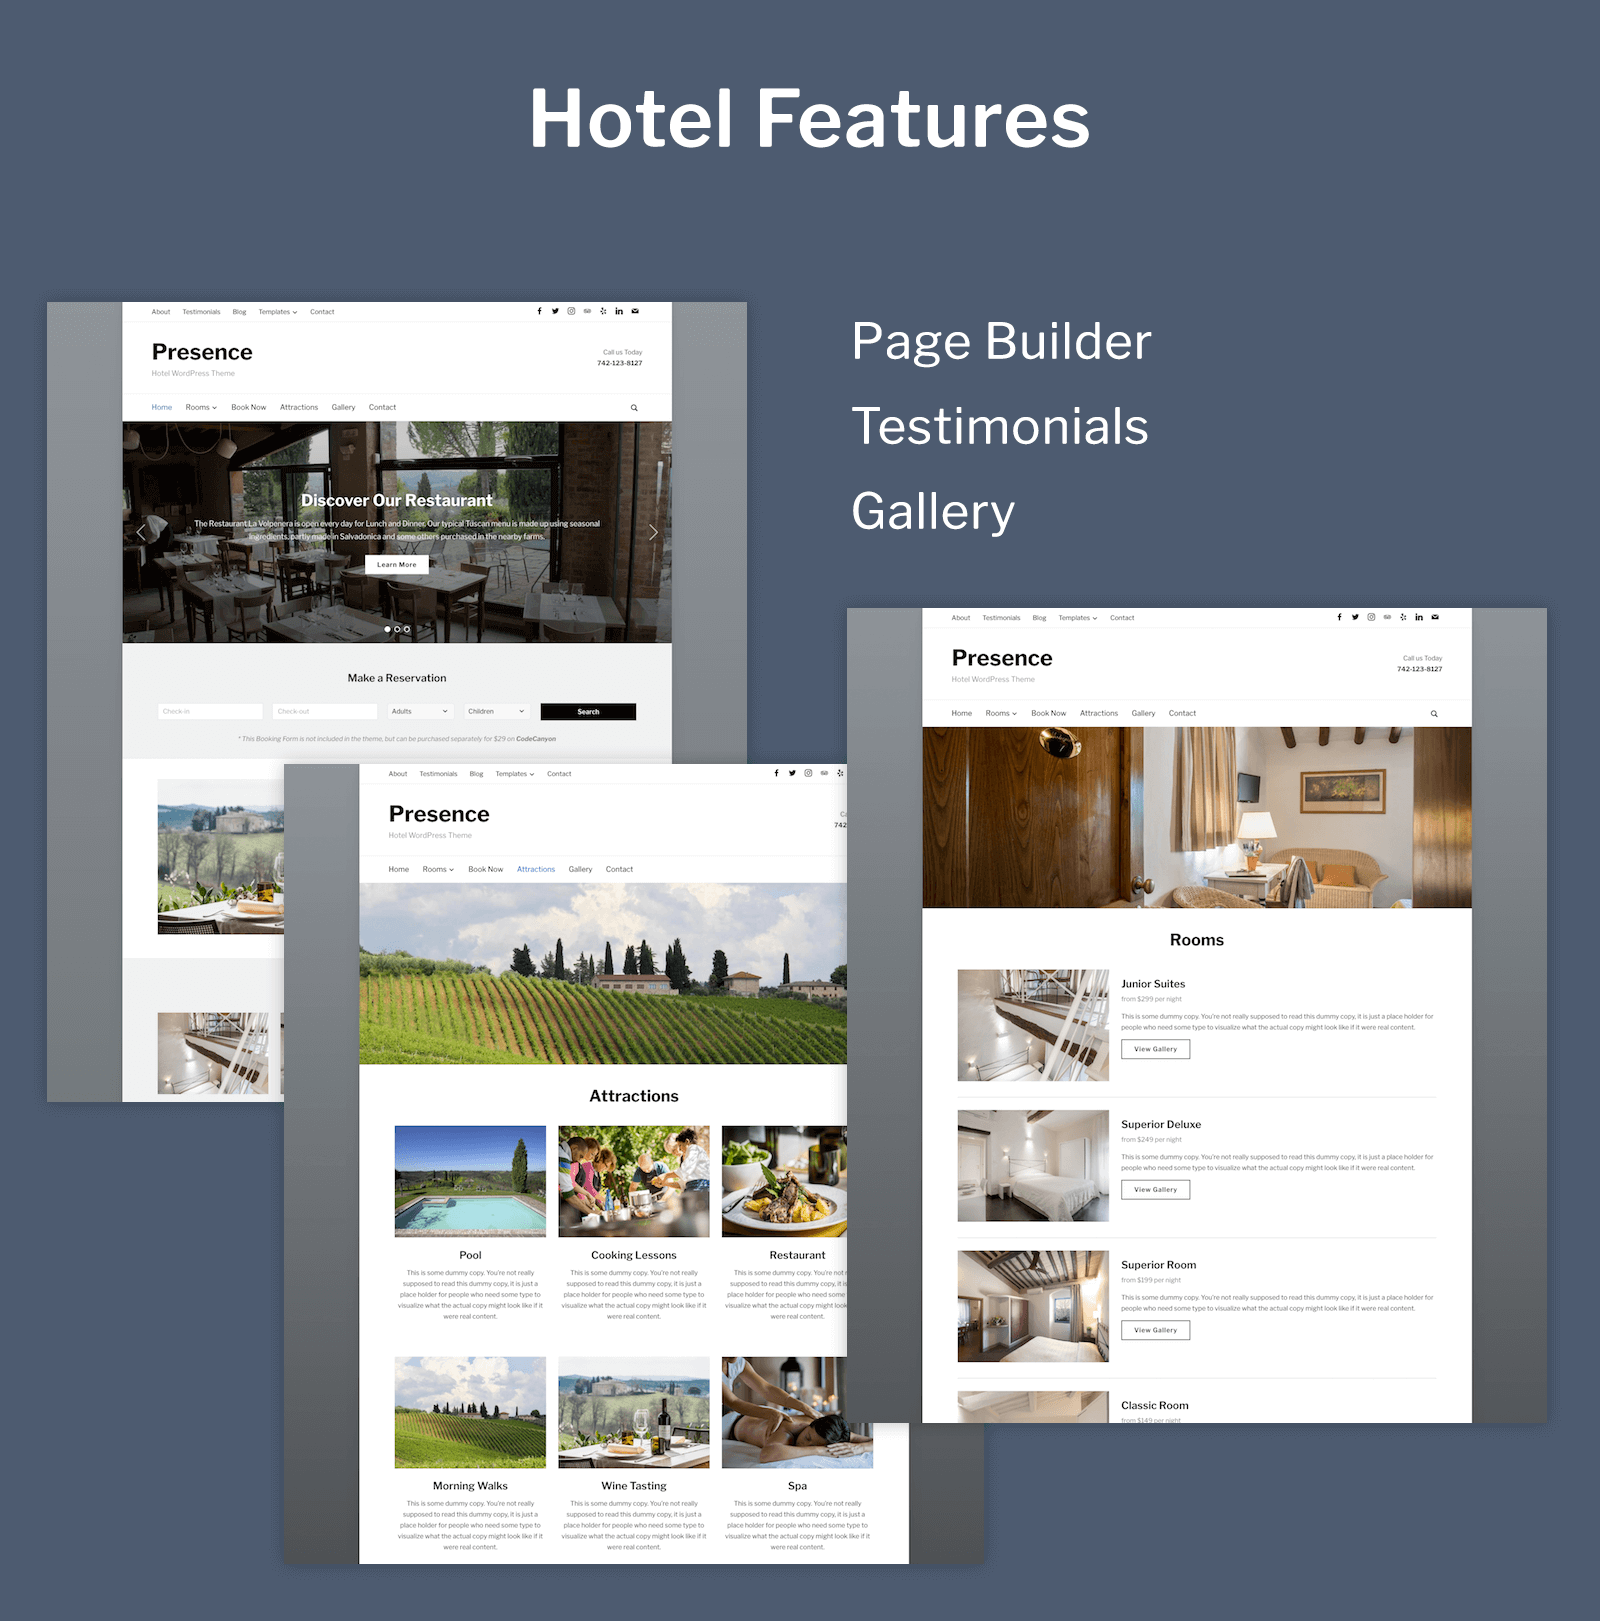 presence-hotel-features-1